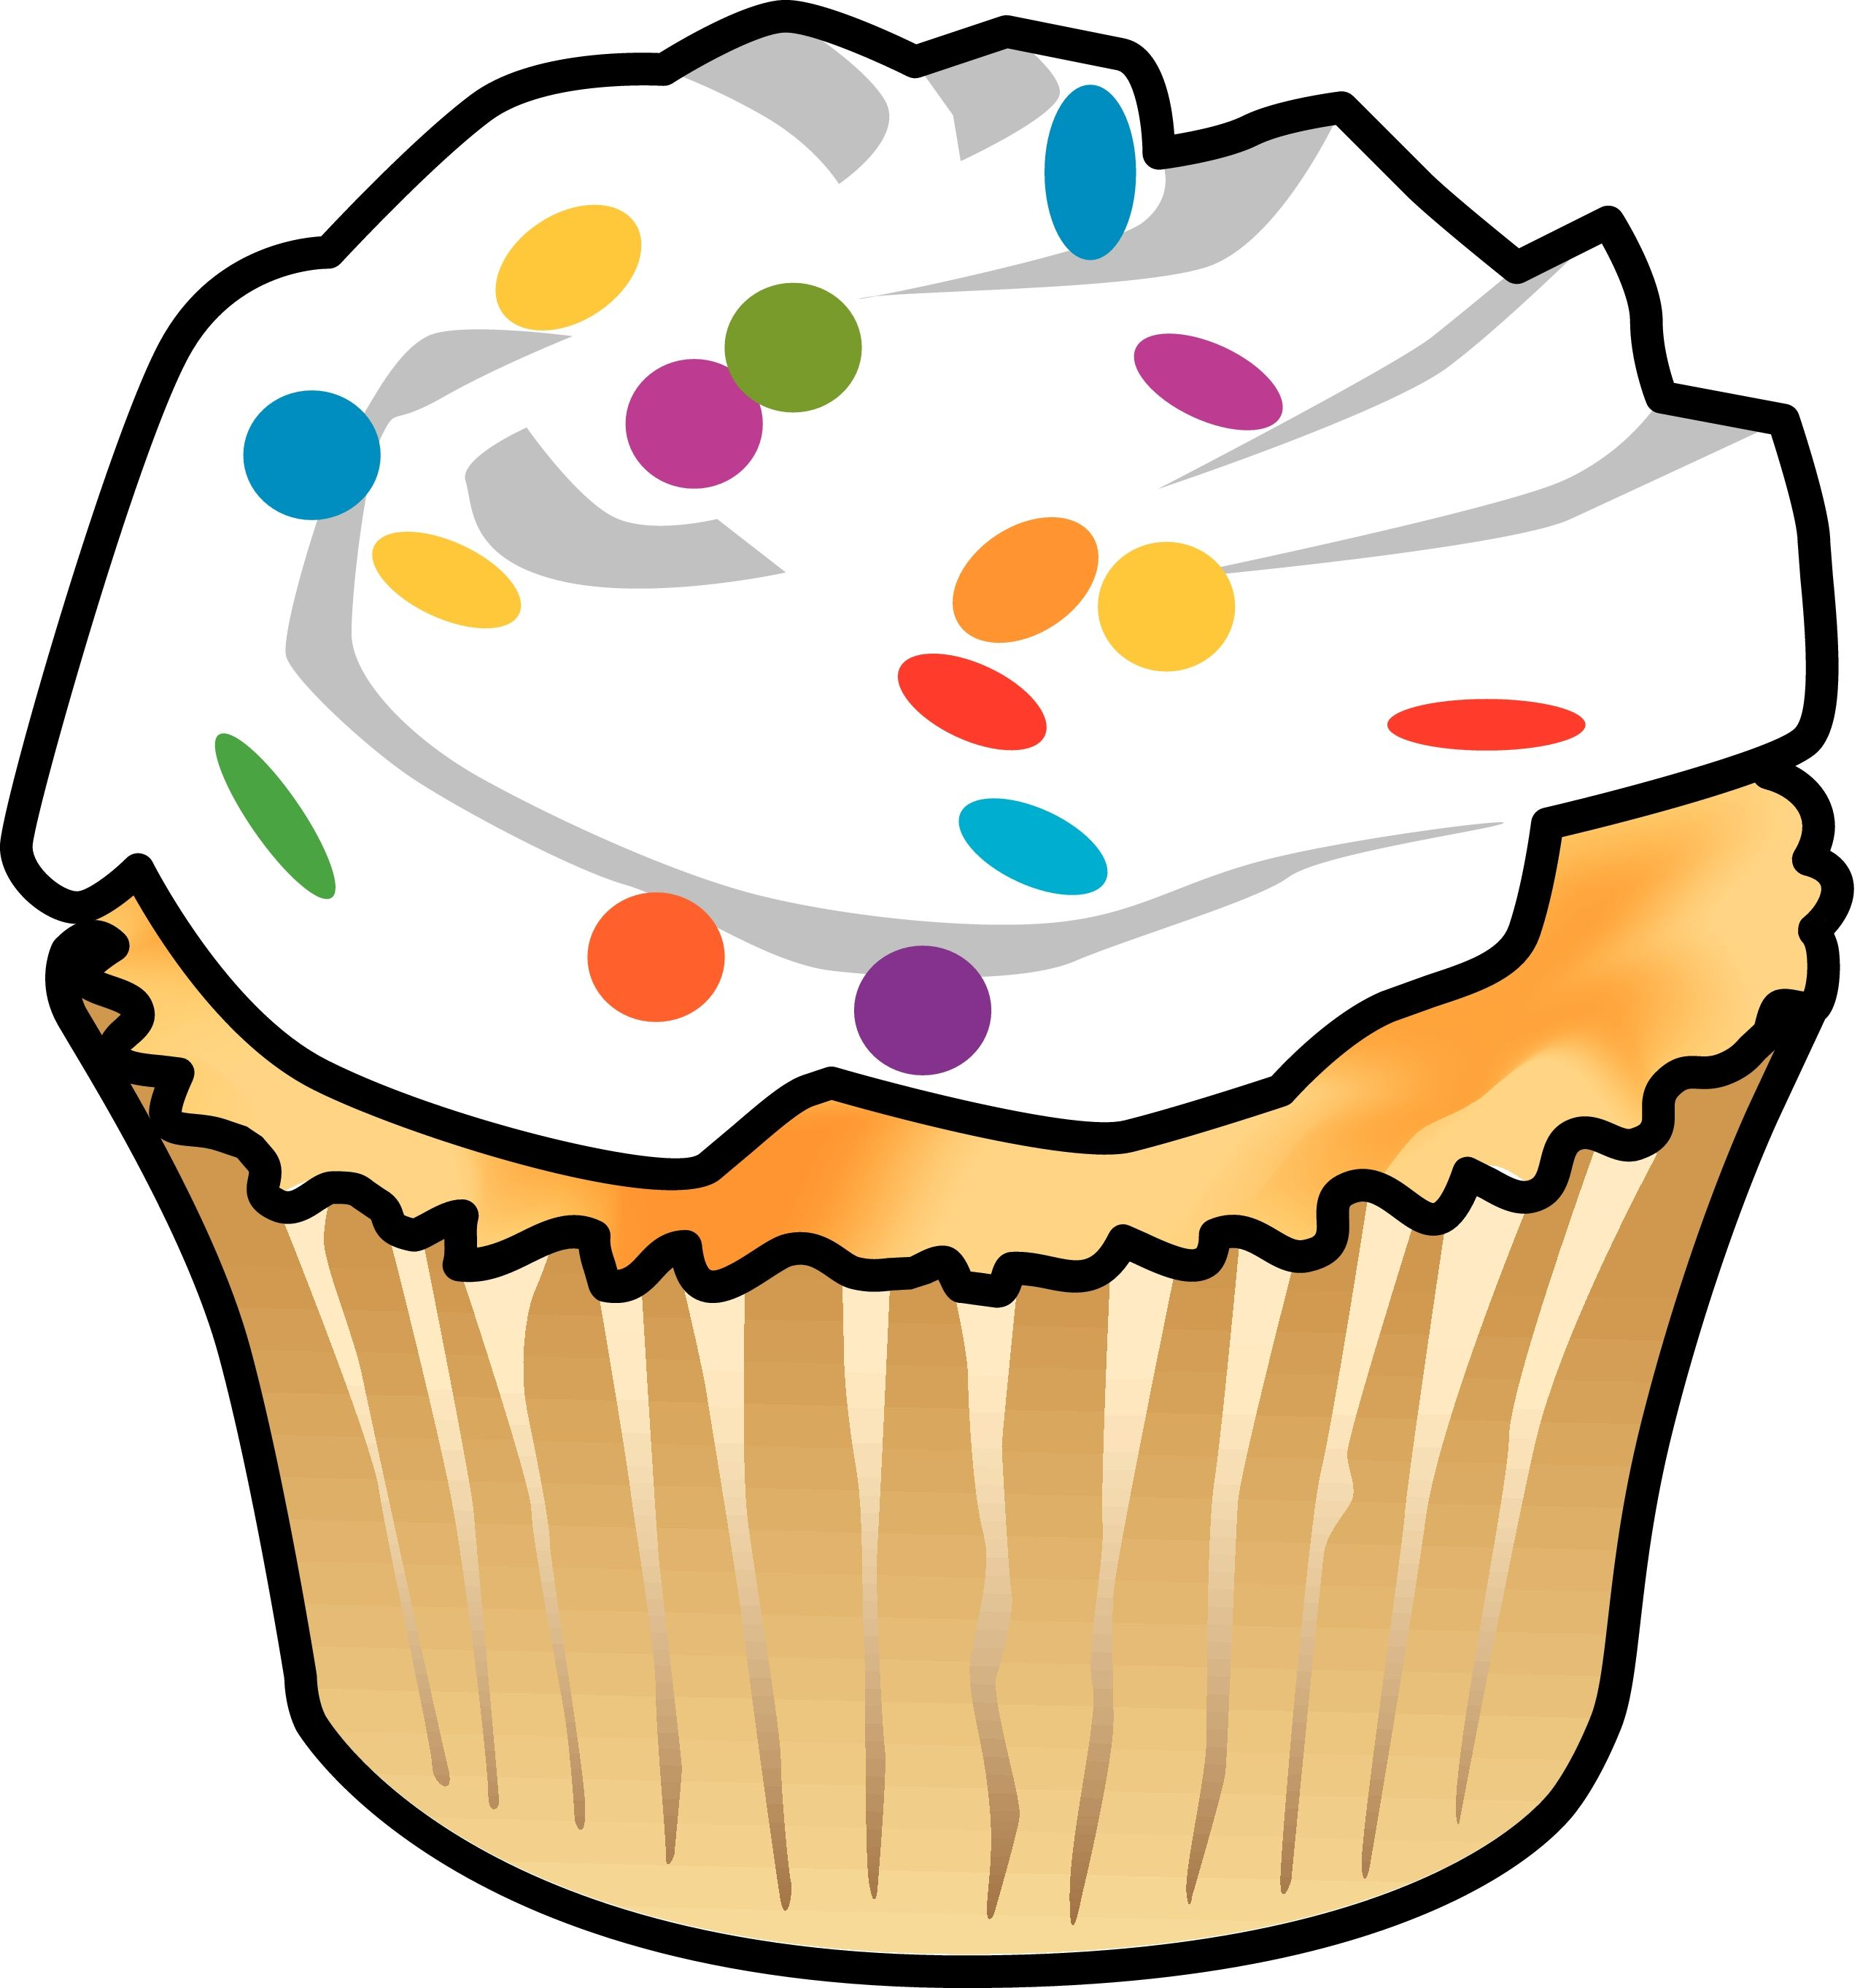 Bake sale items clipart picture freeuse bake sale images - Google Search   bake sale   Potluck images, Food ... picture freeuse